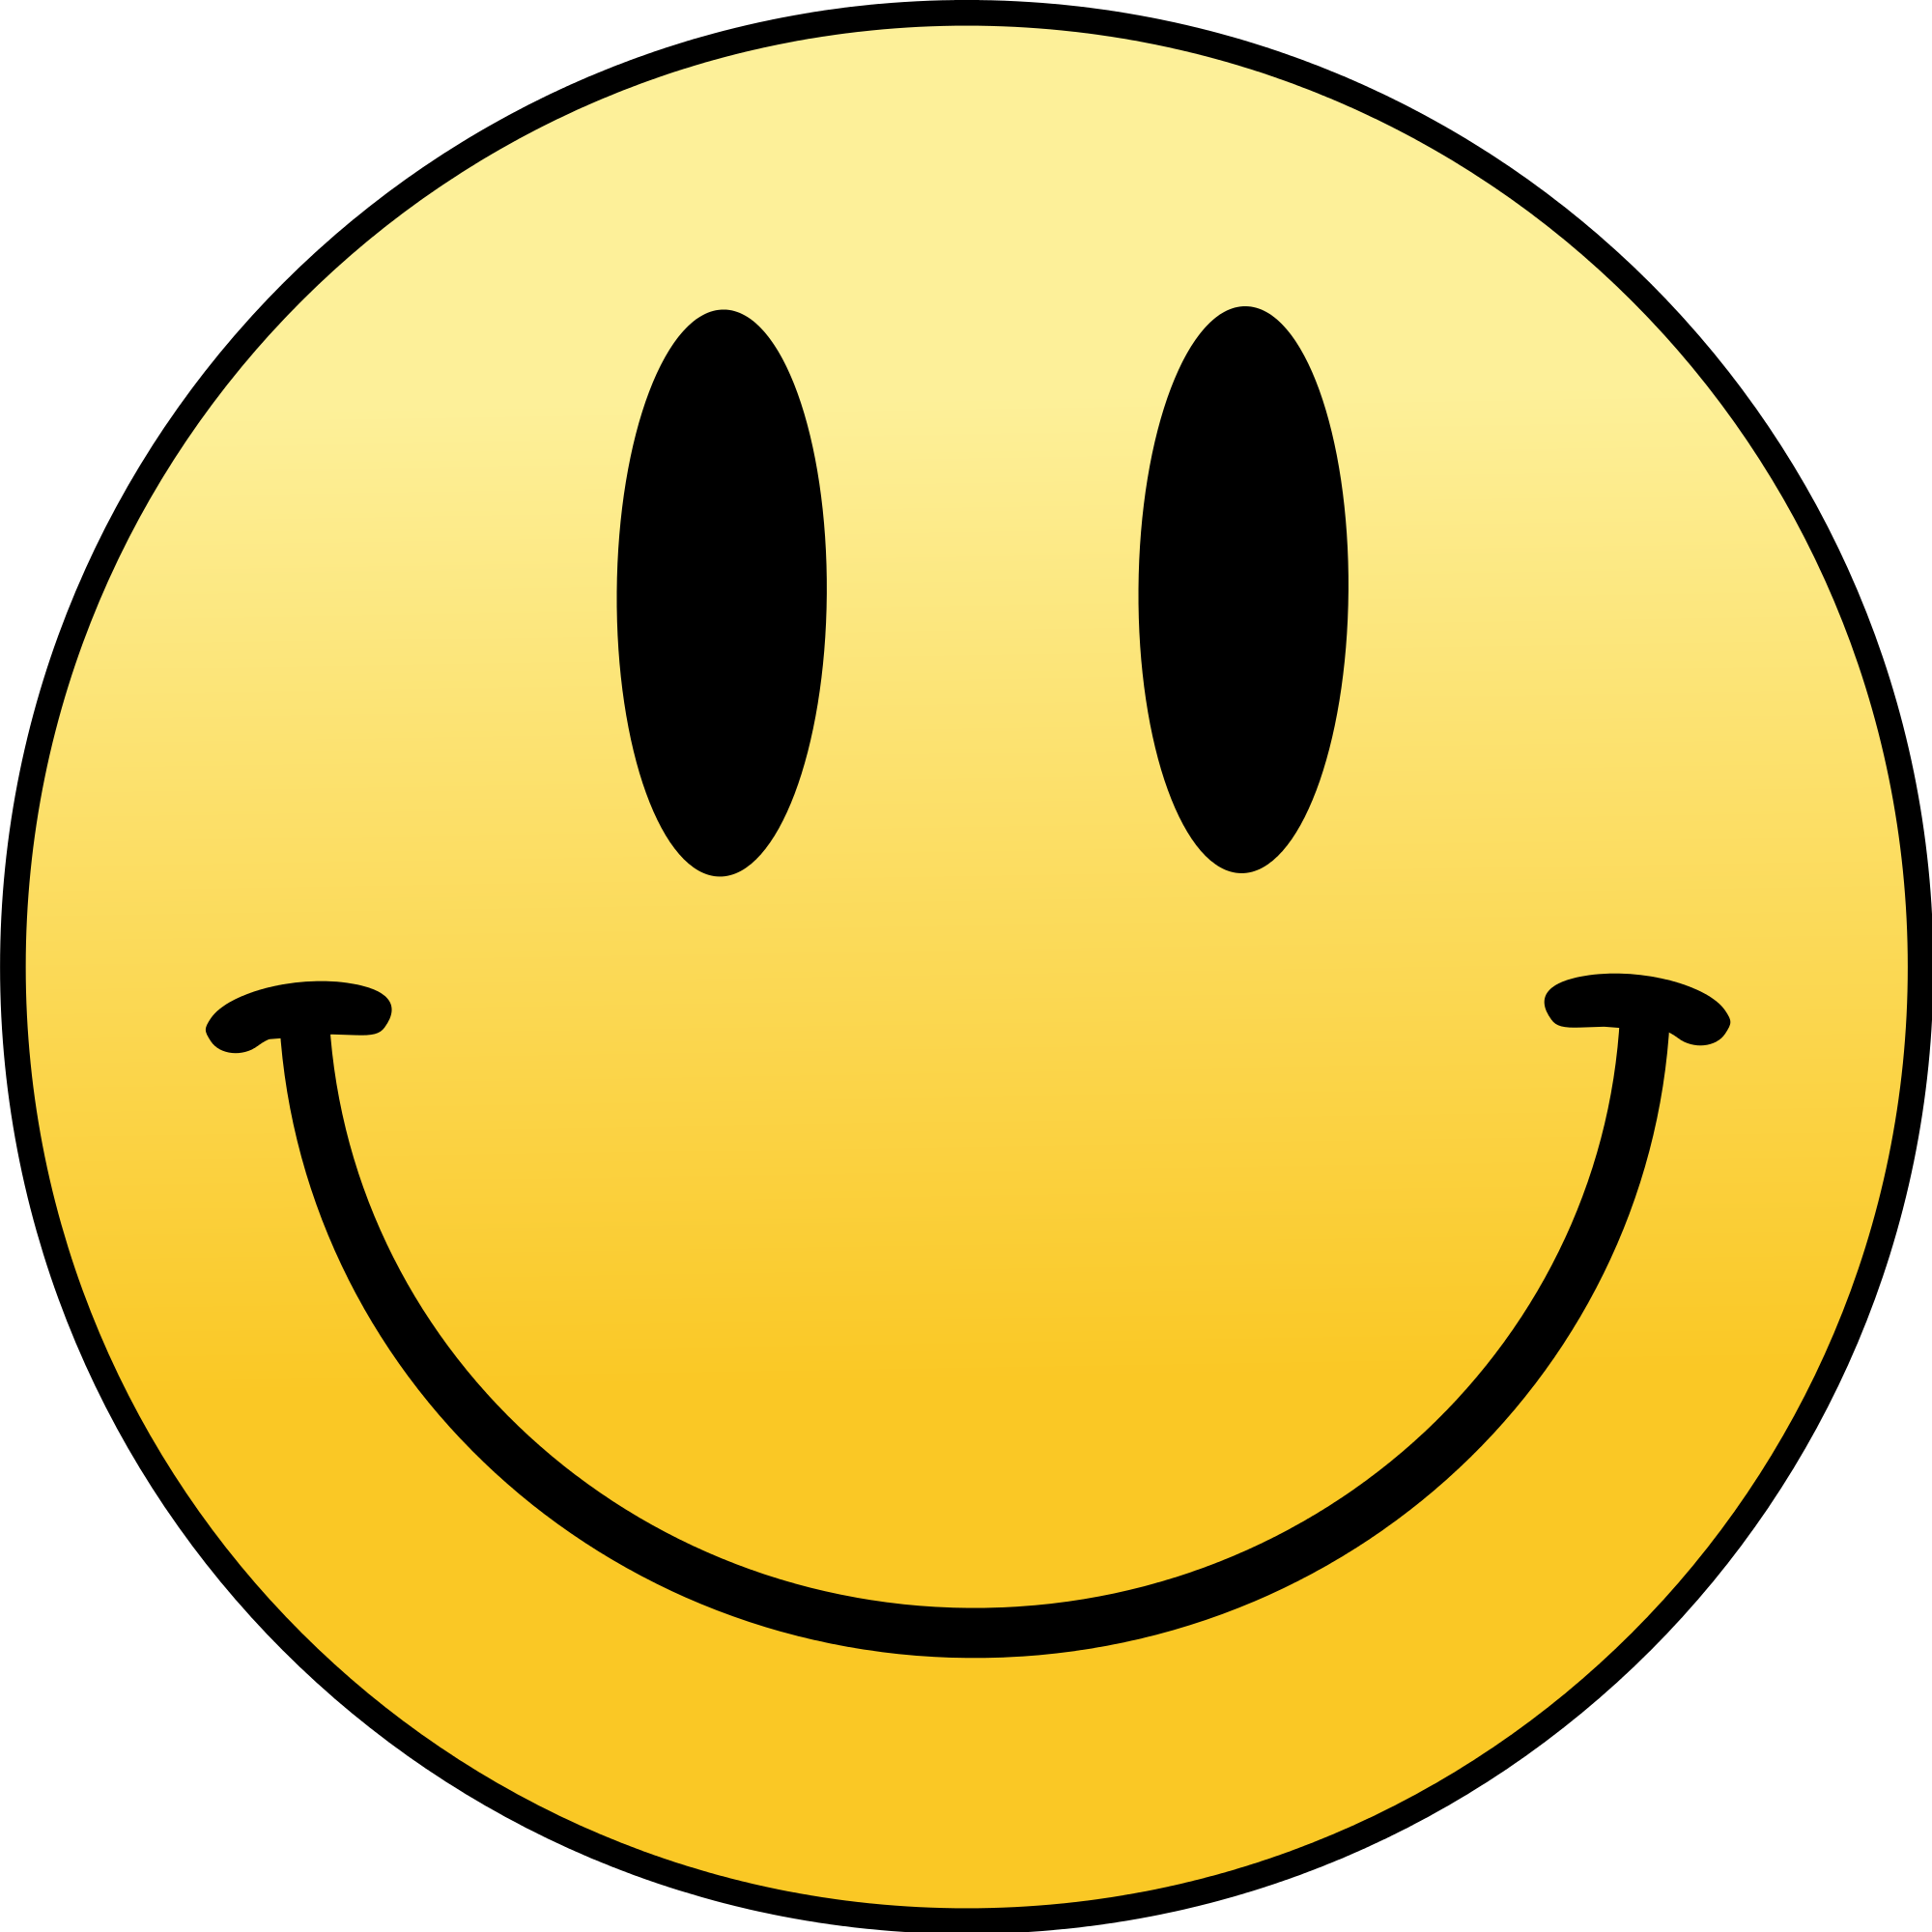 White Smiley Face Png image #42649